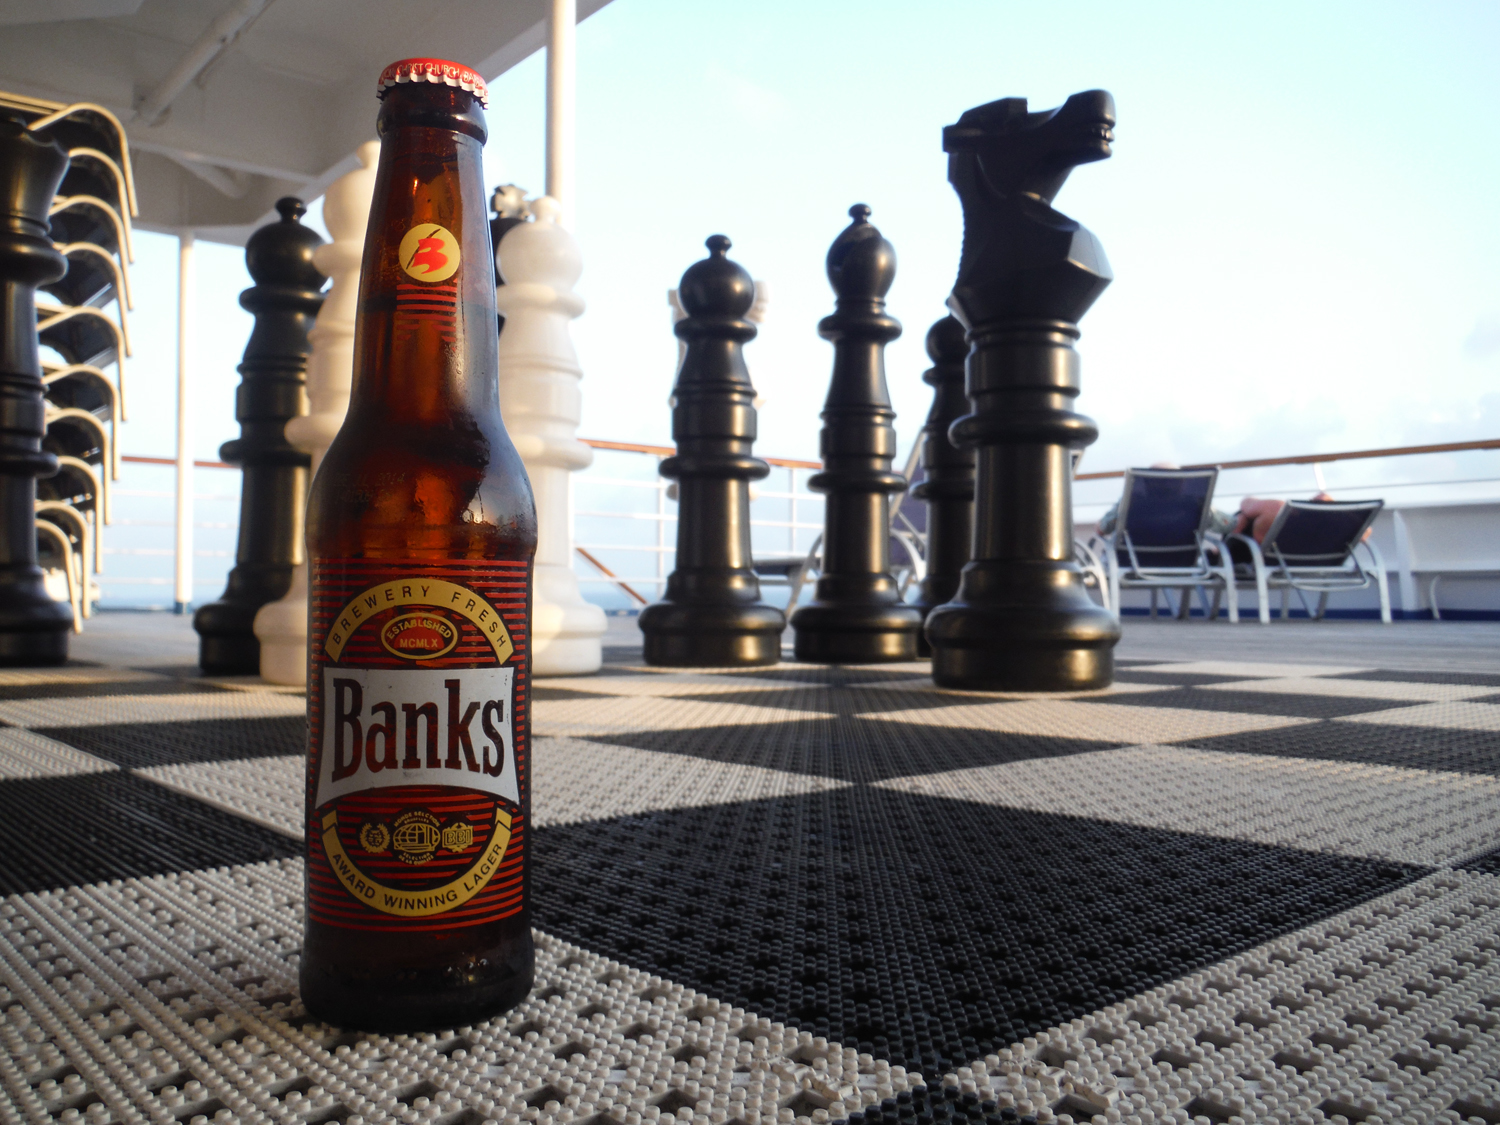 Order Banks Caribbean Lager when on Barbados.